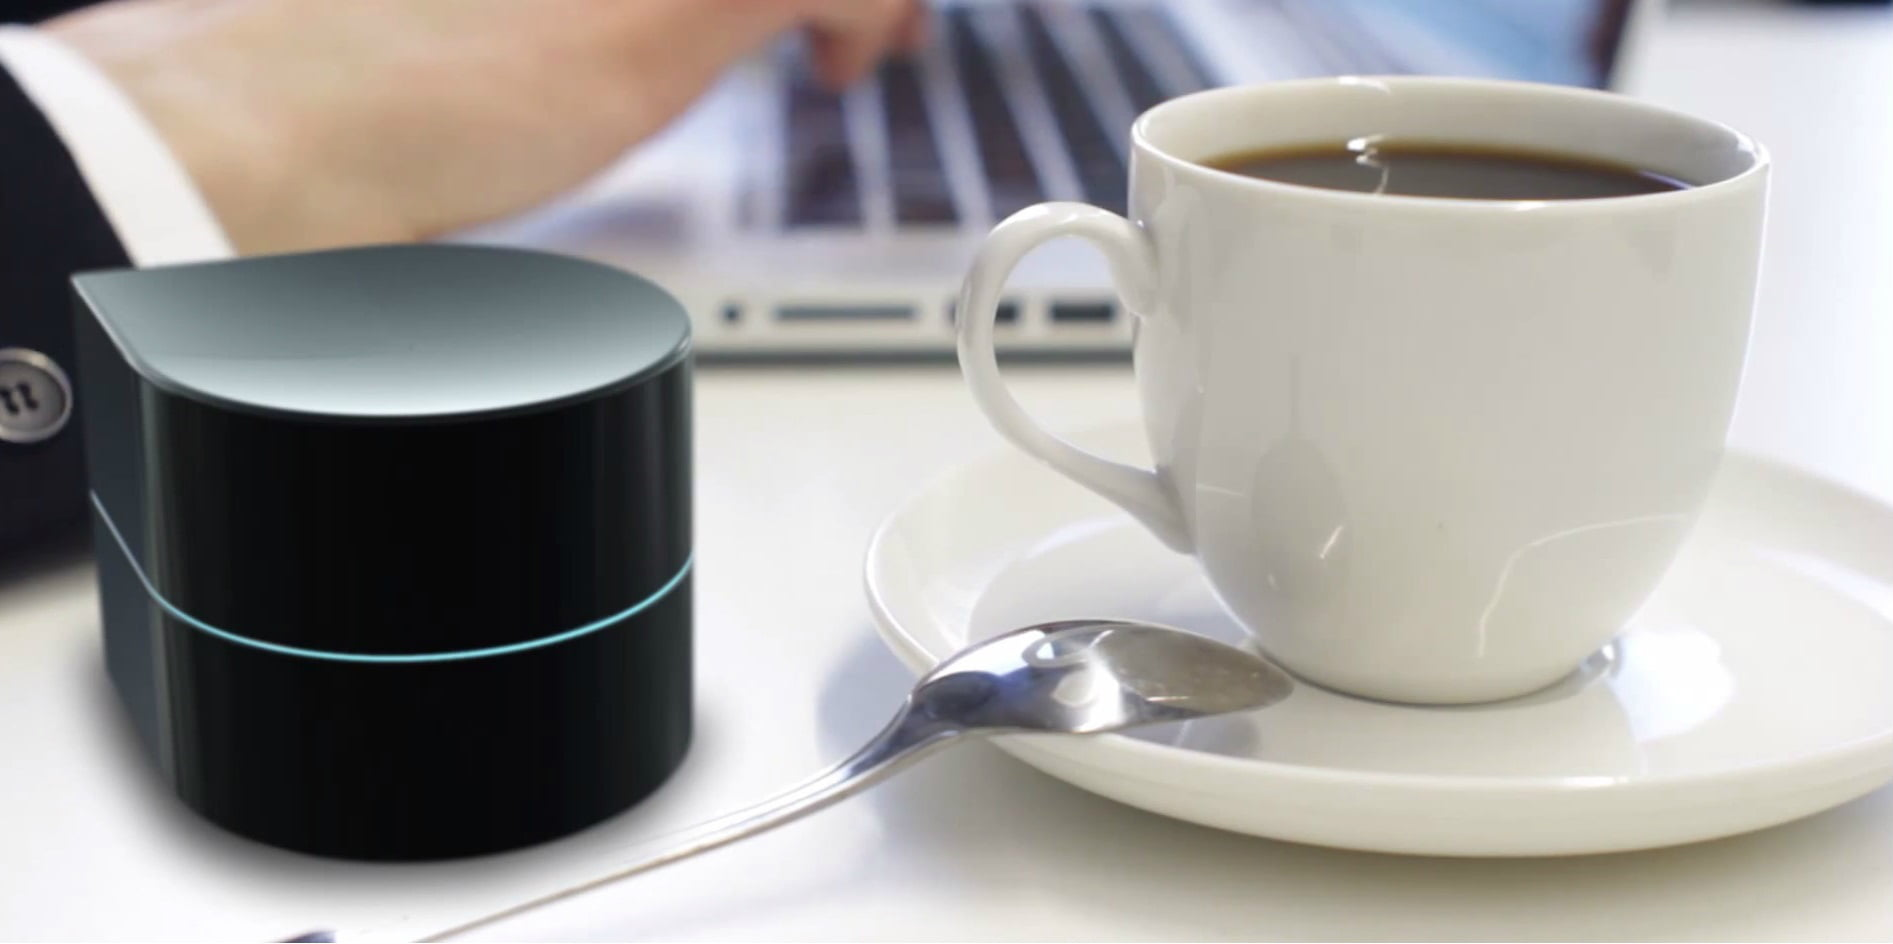 Technology News: Technology News: This Tiny Robot Is Actually A Printer You Carry In Your Pocket